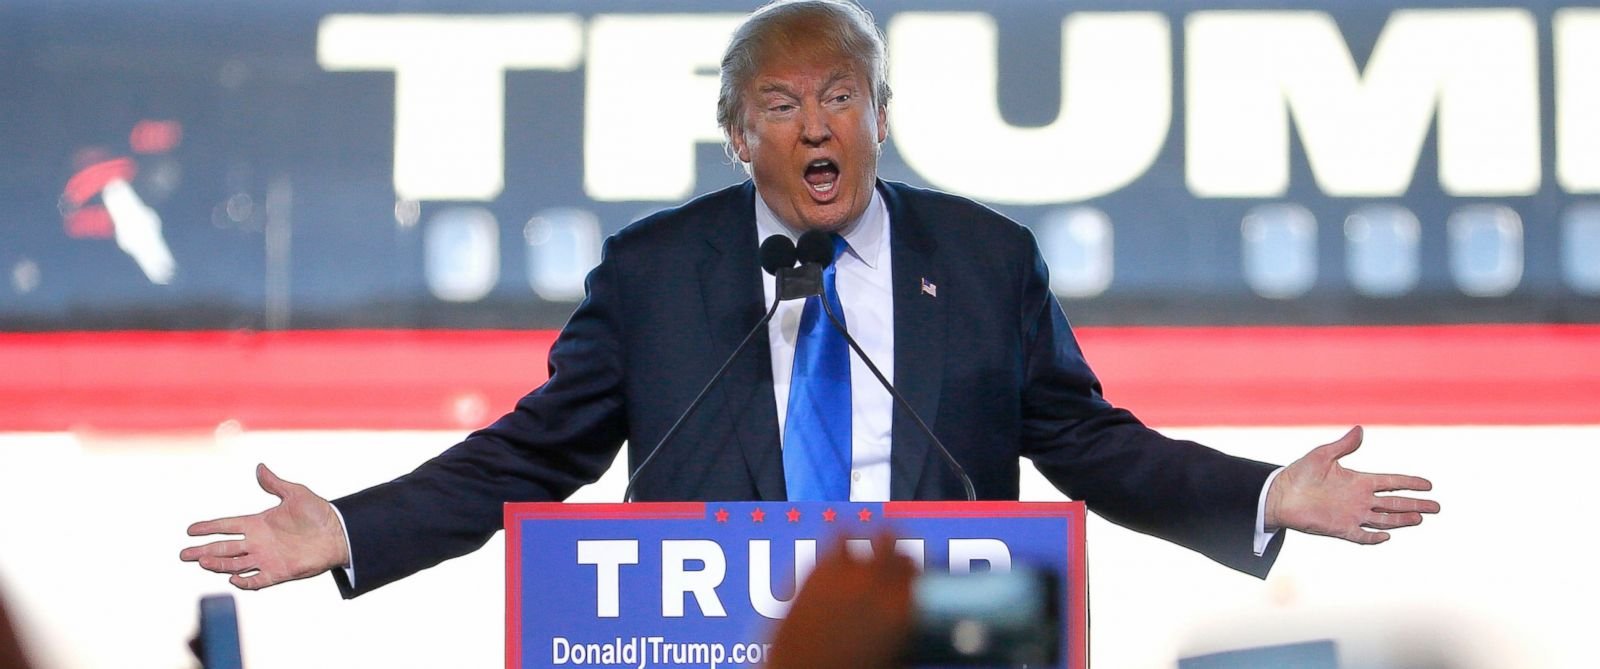 PHOTO: Republican presidential candidate Donald Trump speaks at a campaign rally, Dec. 16, 2015, in Mesa, Ariz.